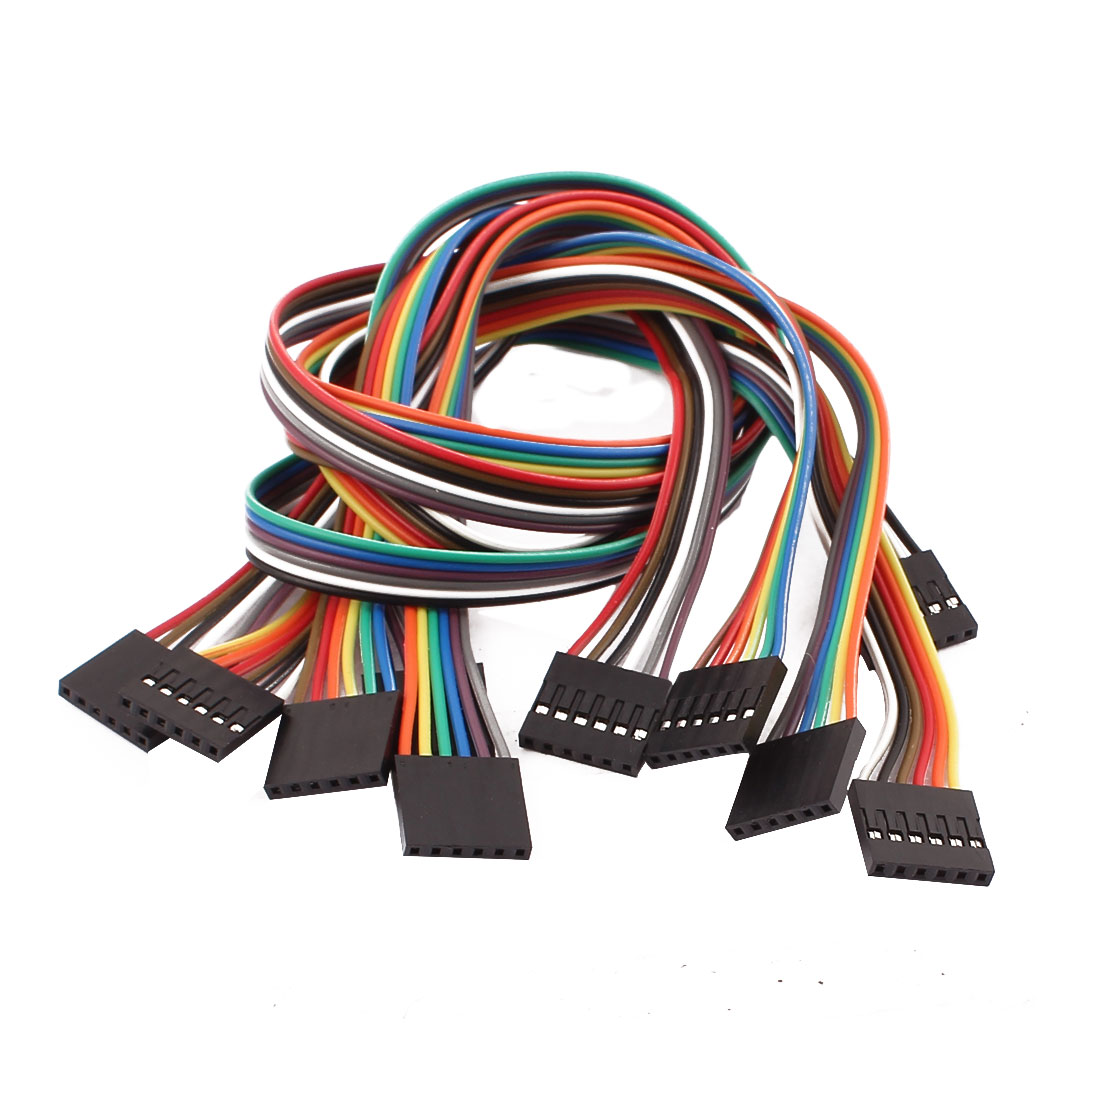 5 Pcs Female to Female 6P Jumper Wire Ribbon Cable Pi Pic Breadboard DIY 40cm Long